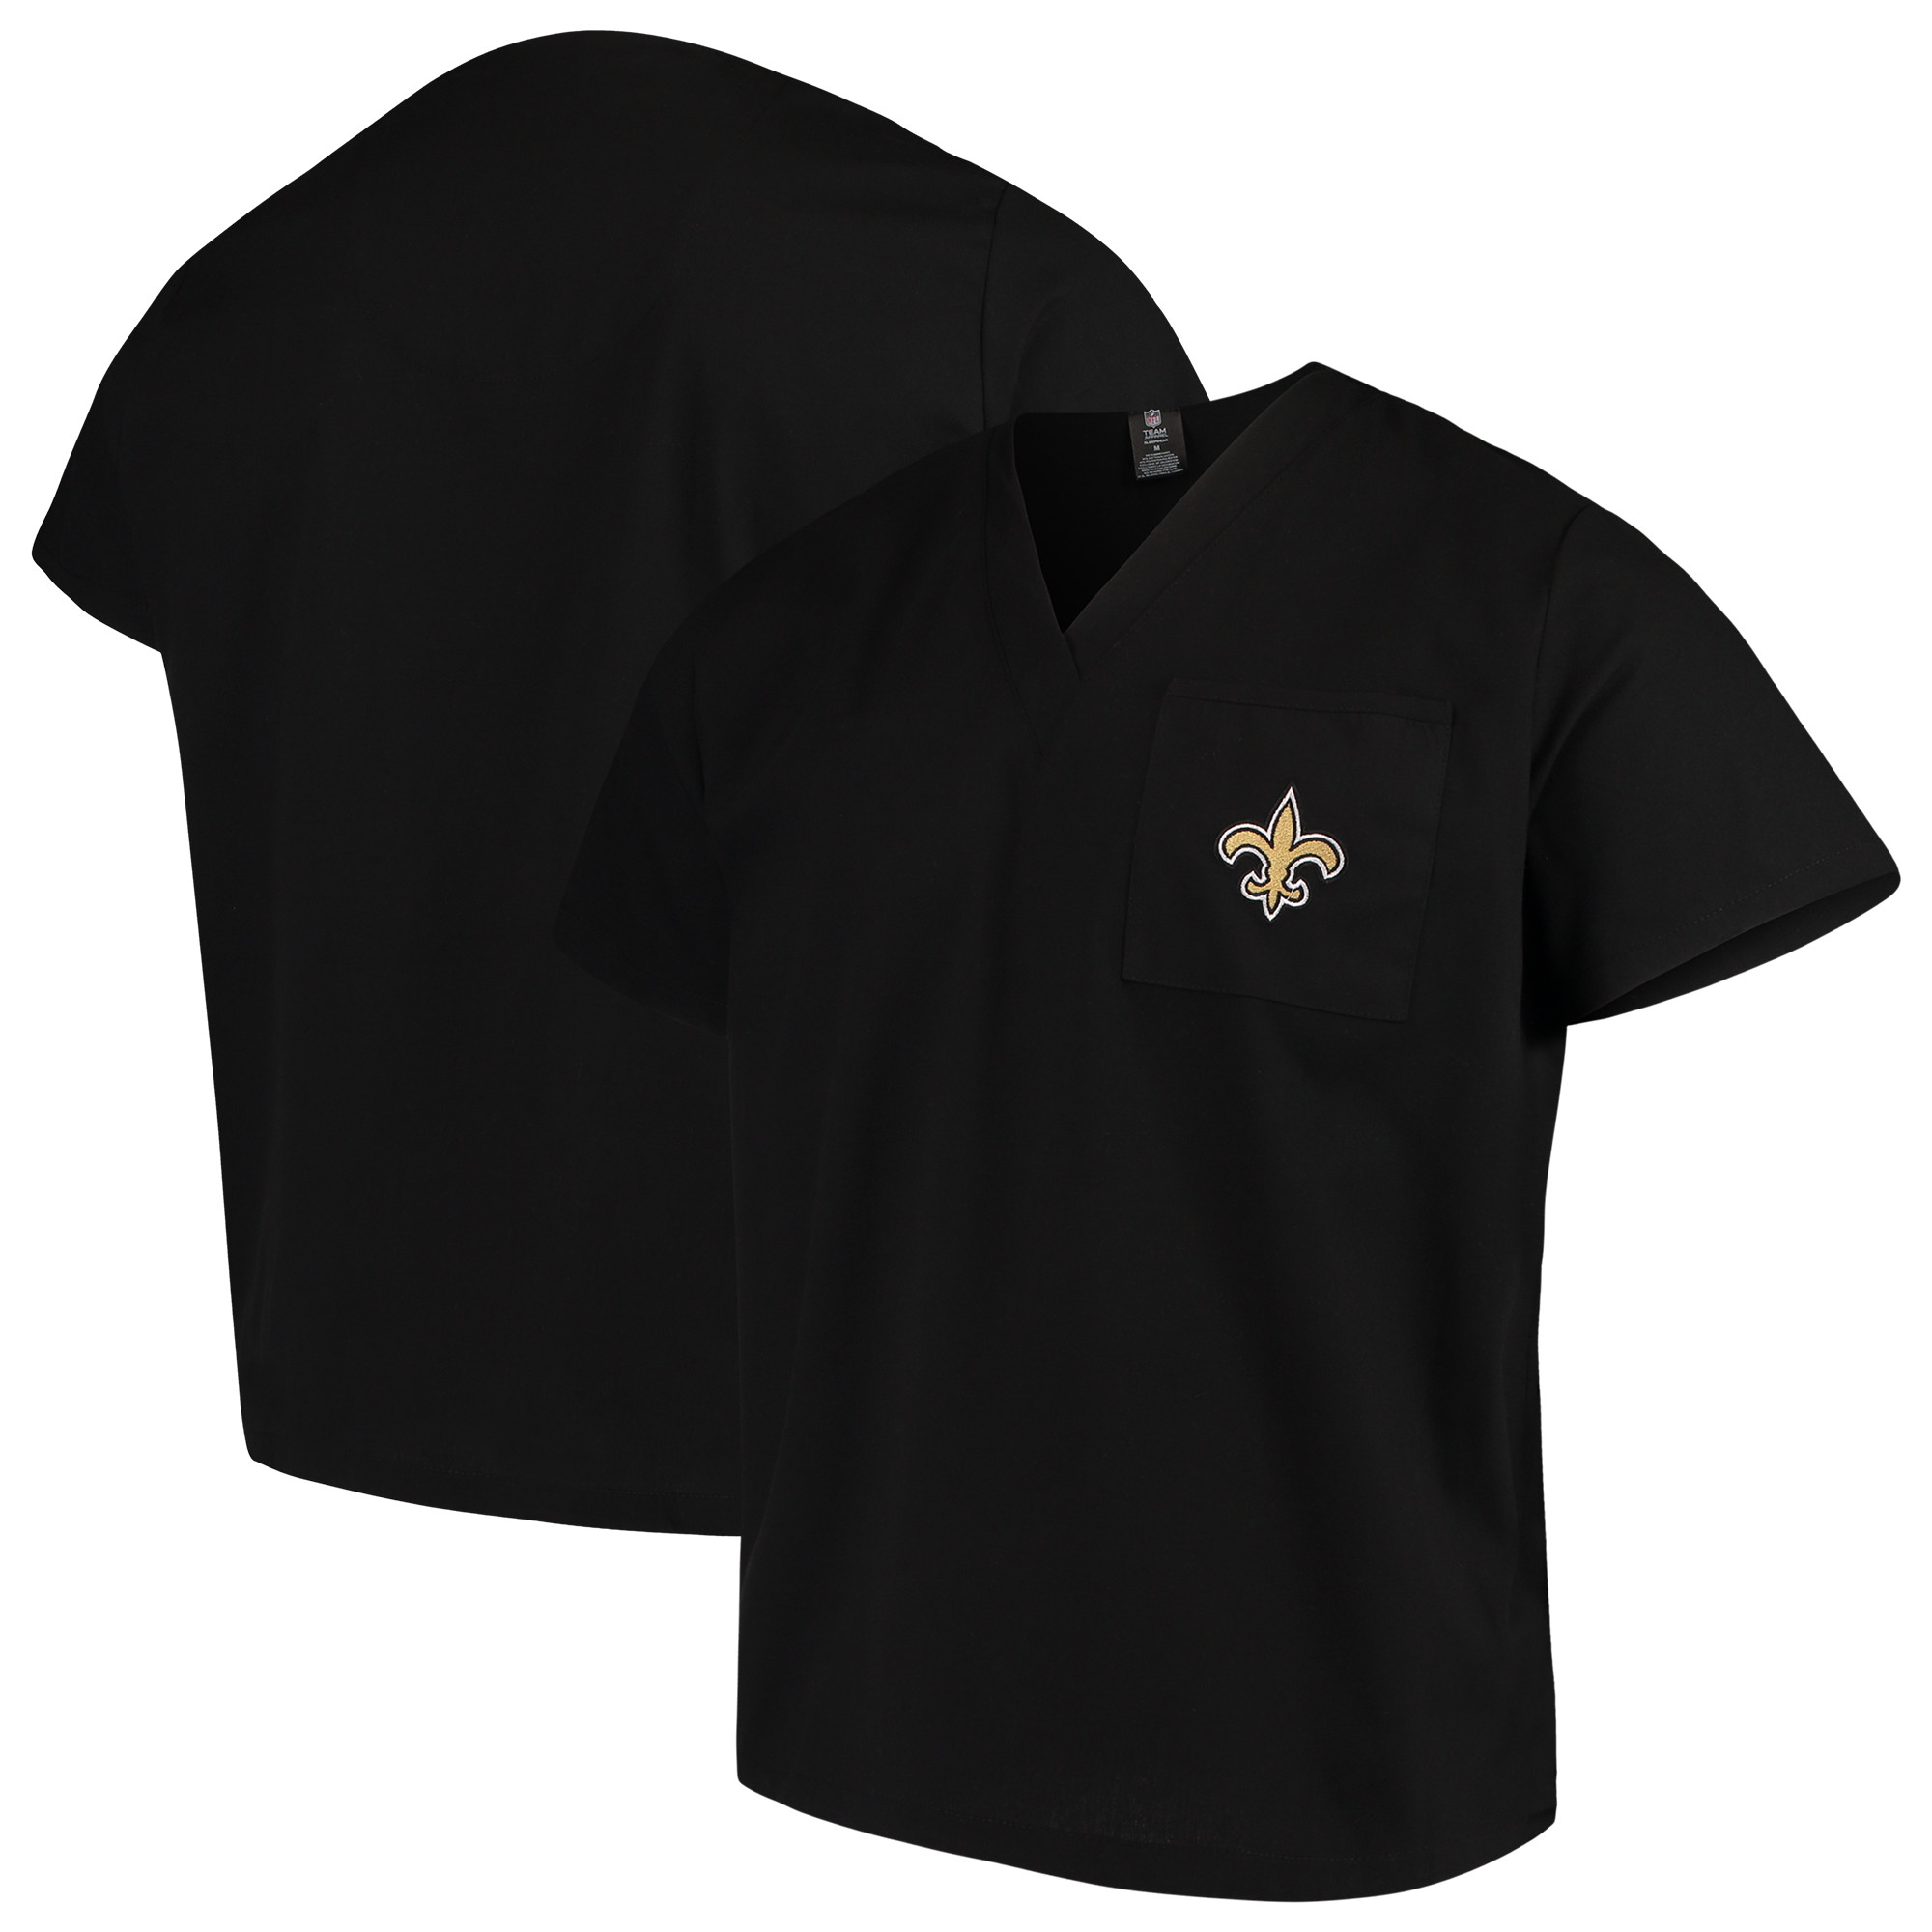 New Orleans Saints Concepts Sport Scrub Top - Black